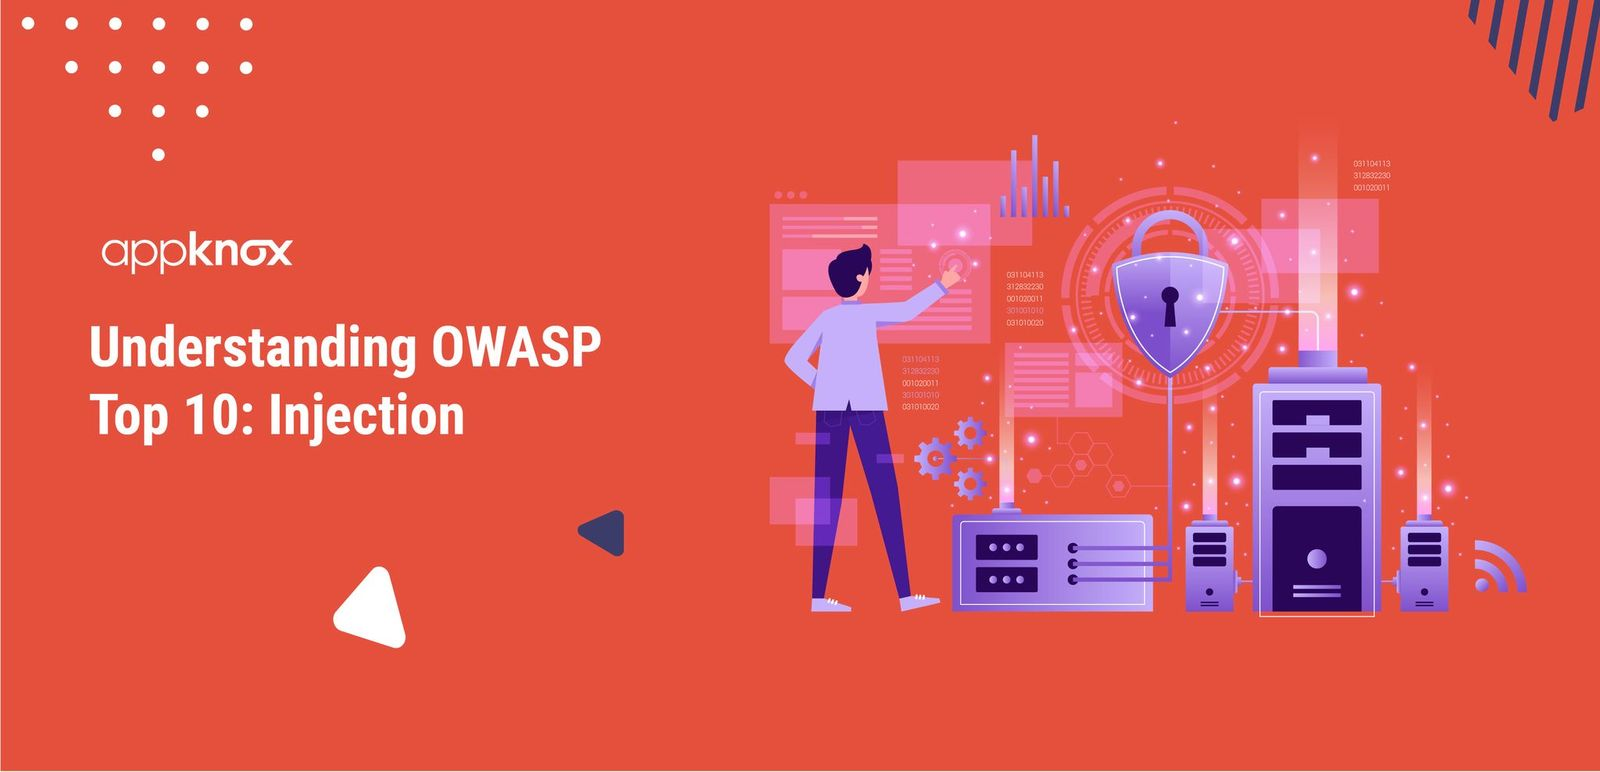 Understanding OWASP Top 10 Mobile: Client Side Injection